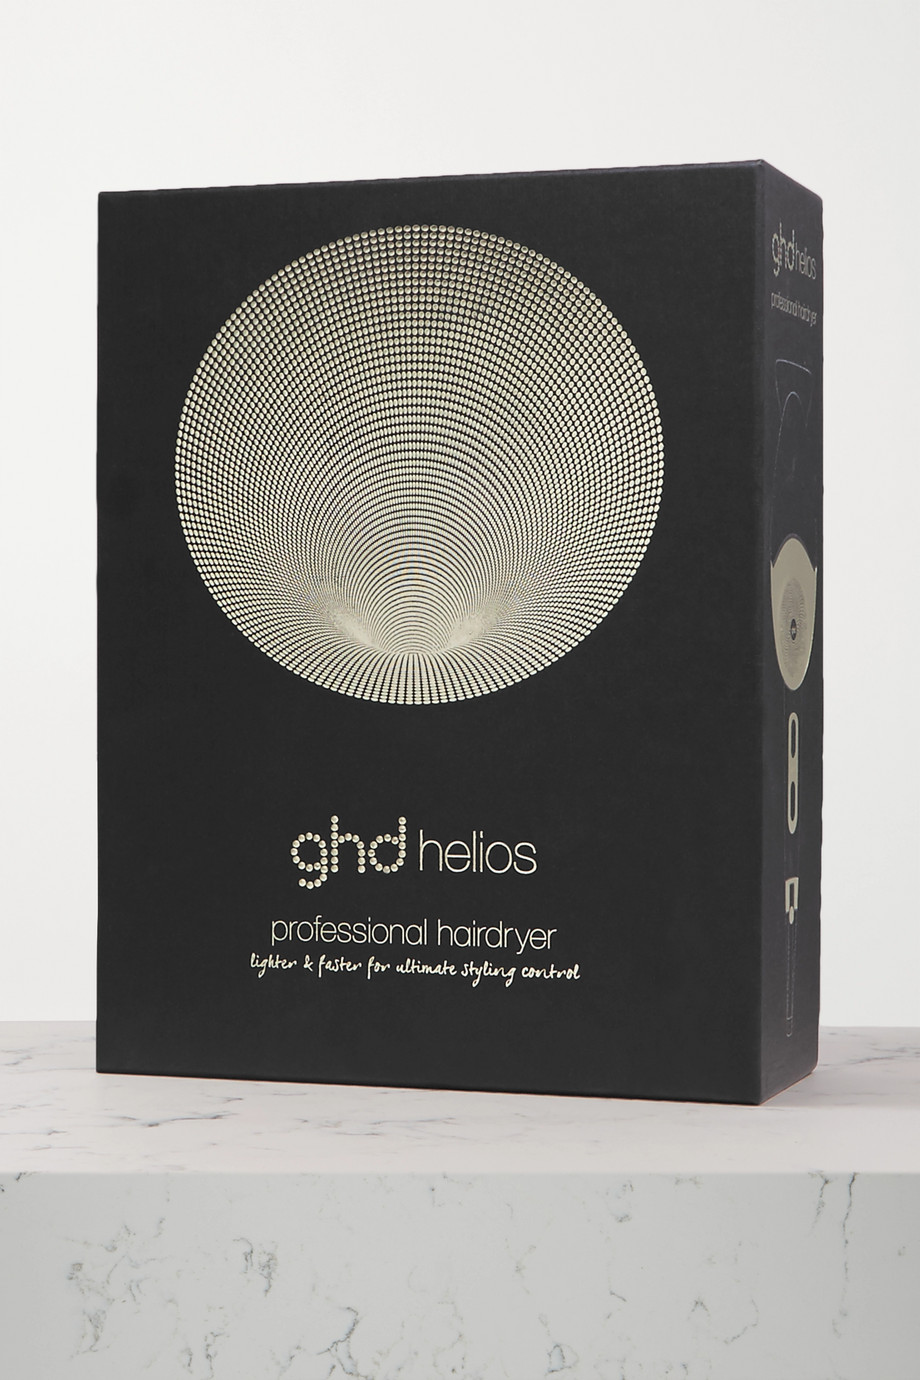 ghd Helios Professional Hairdryer - UK 3-pin plug